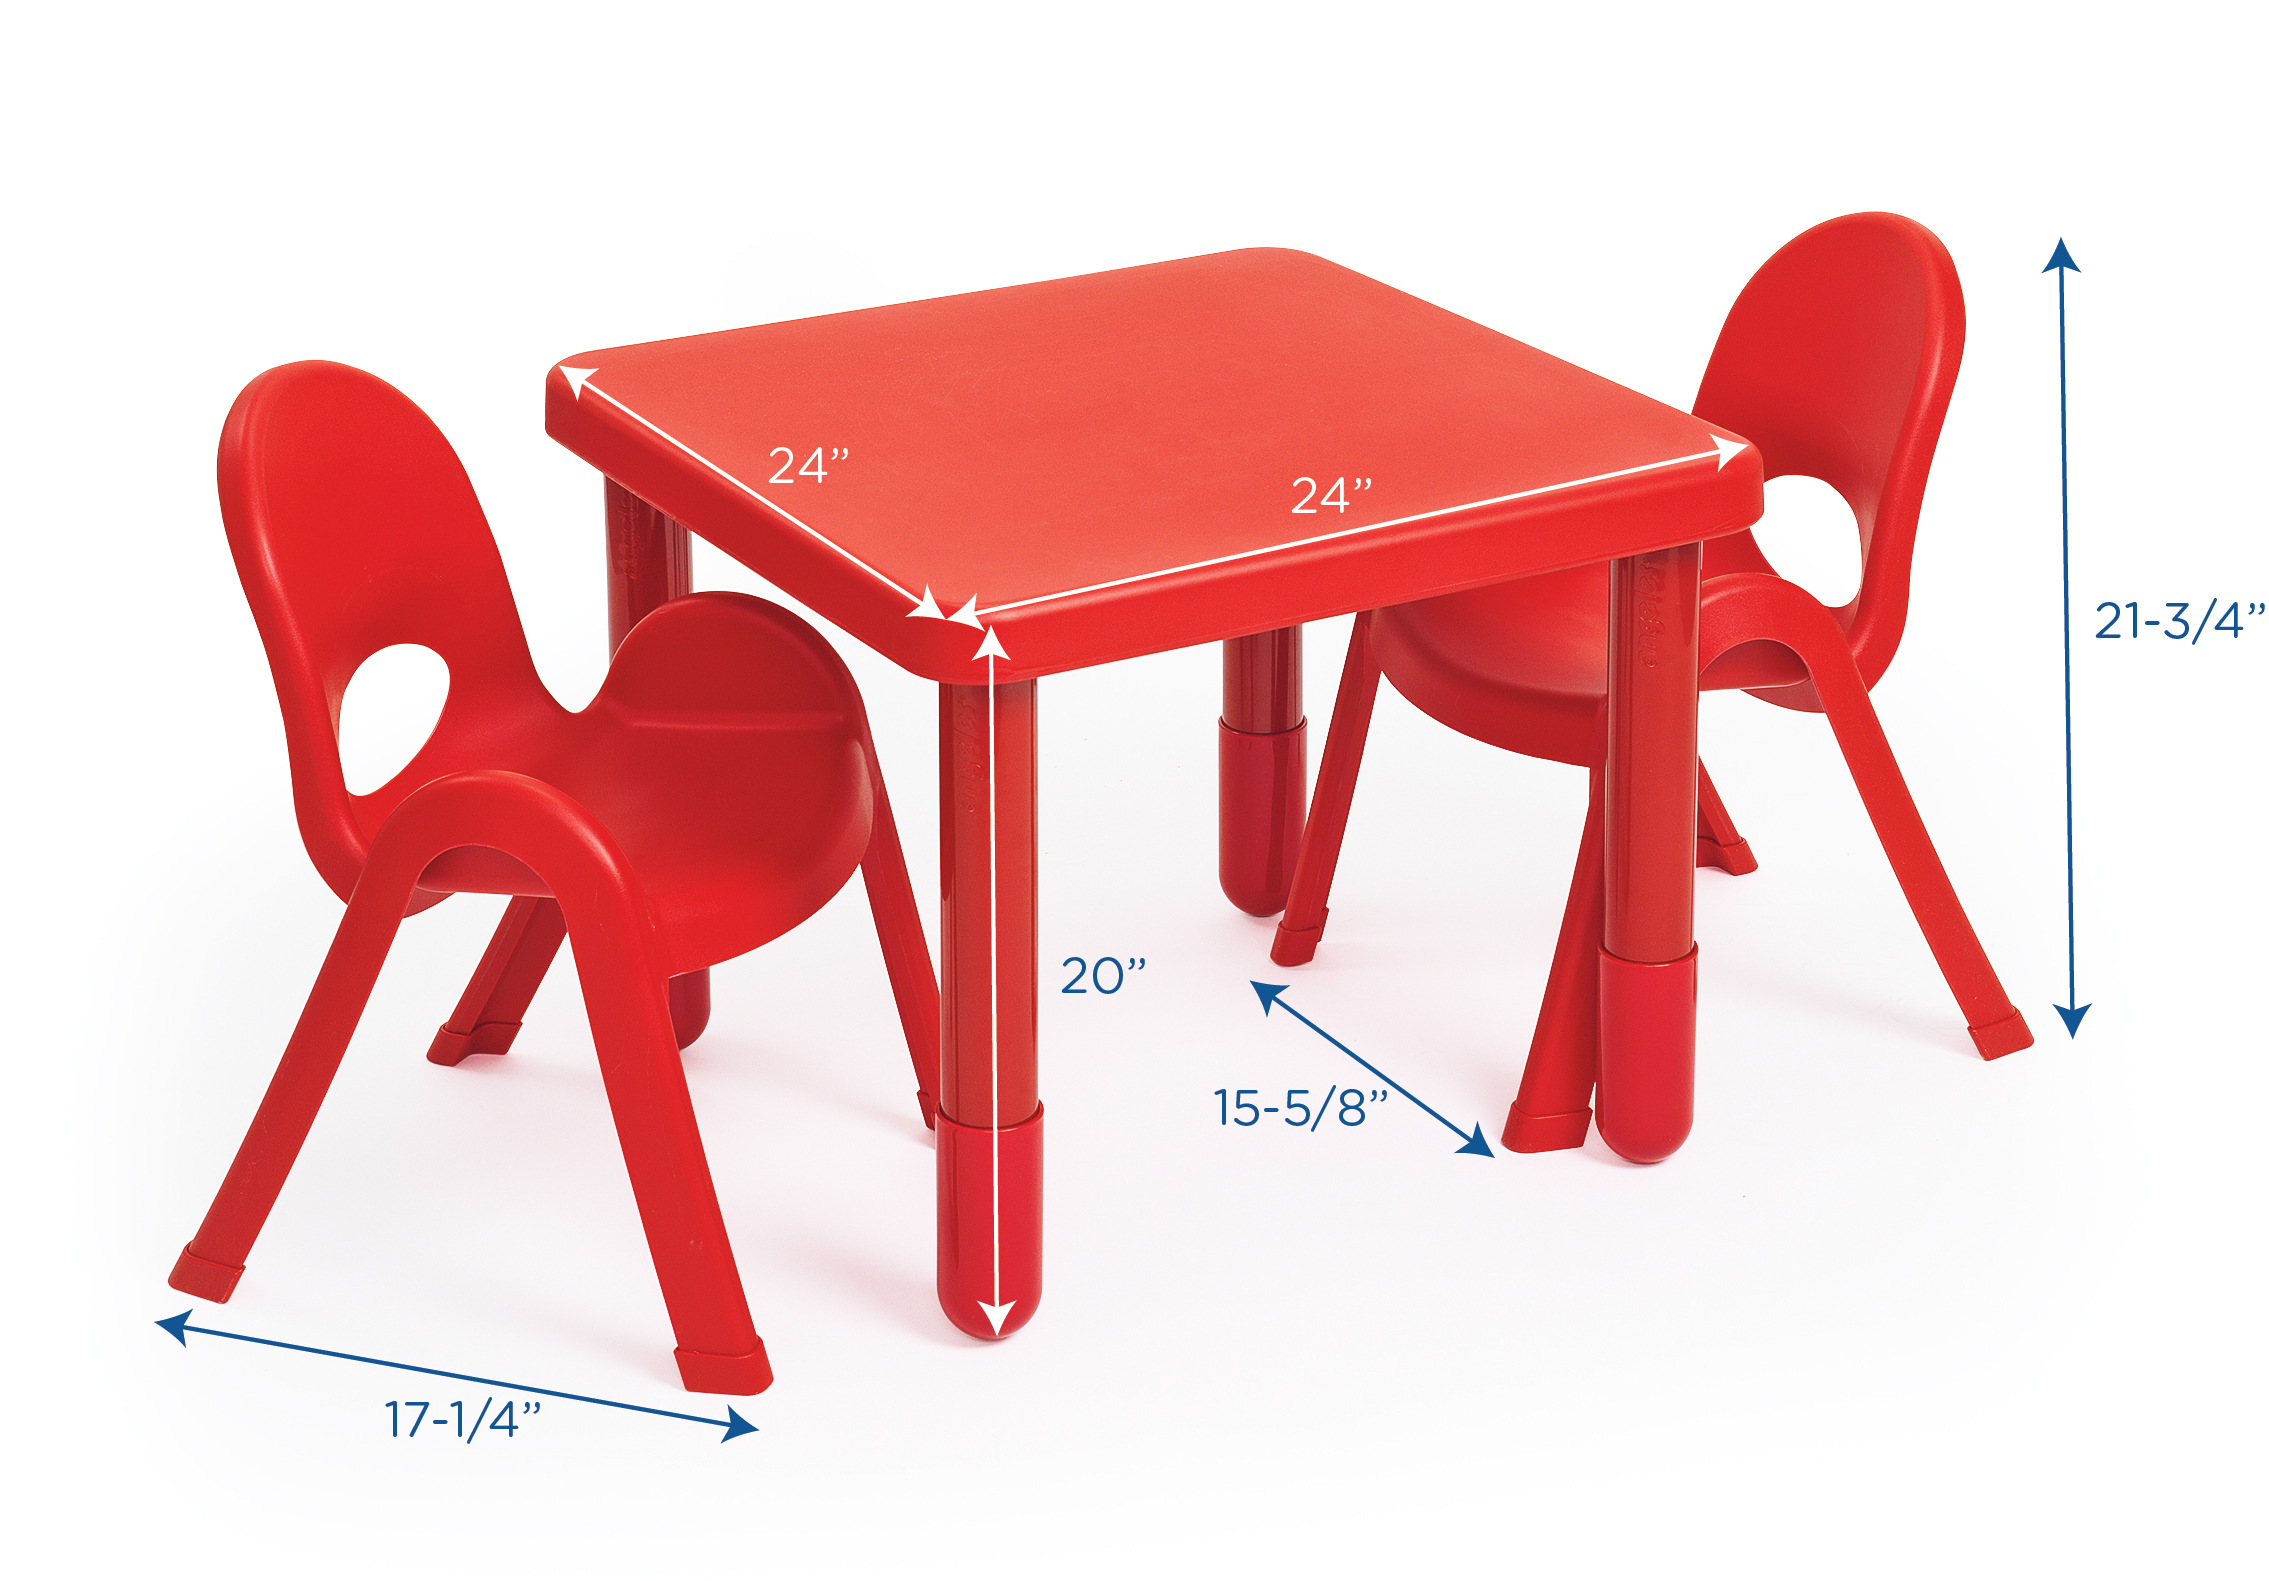 Set of 2 Angeles MyValue Candy Apple Red Table and Chair